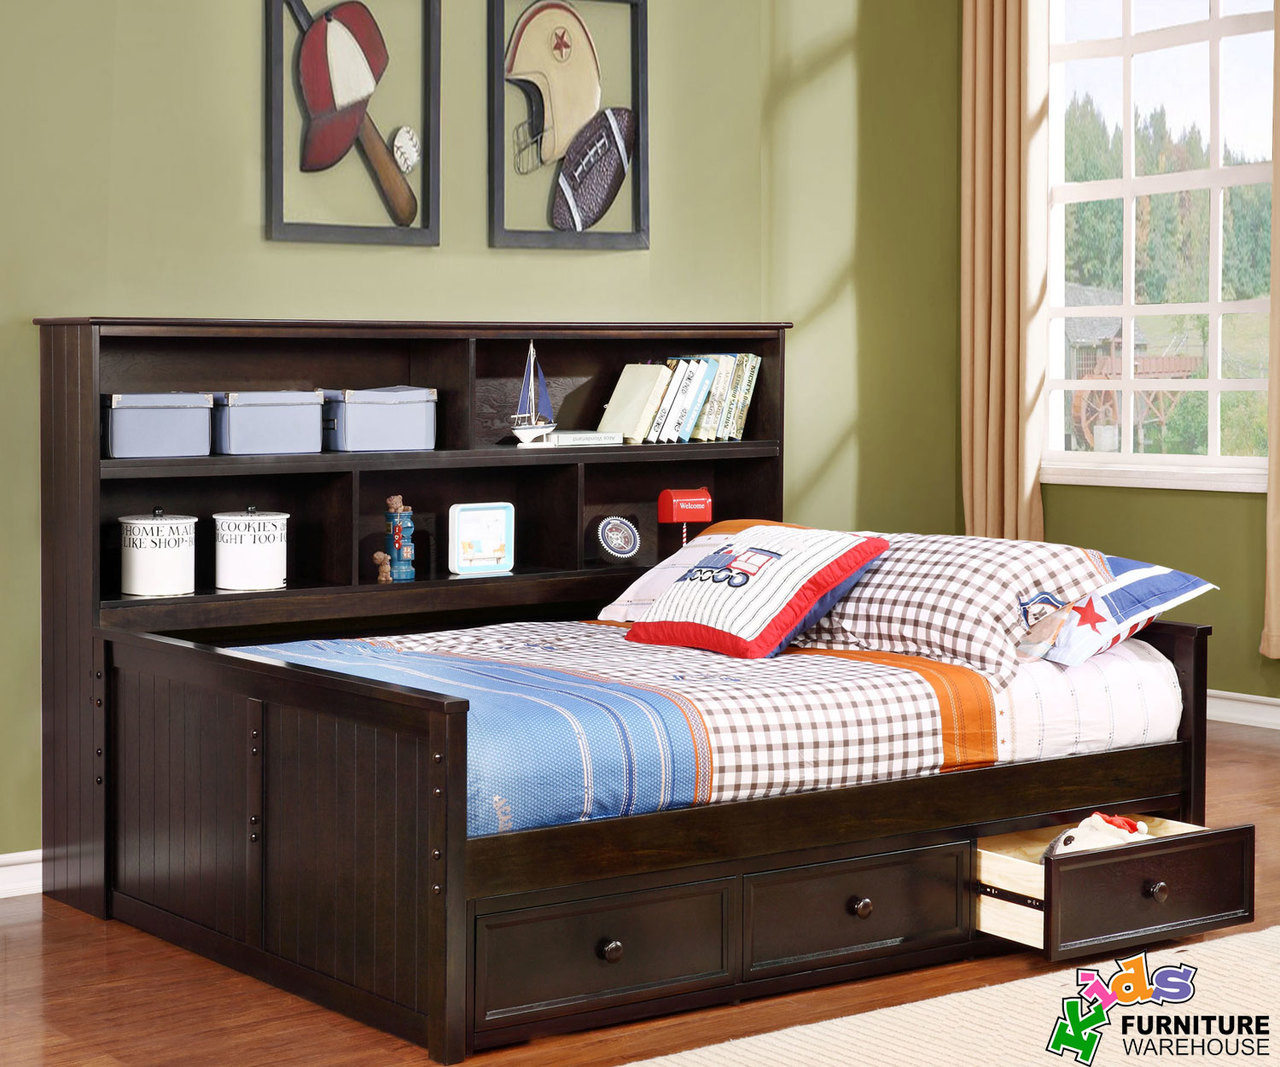 Allen House Bookcase Captains Daybed Full Size Graphite